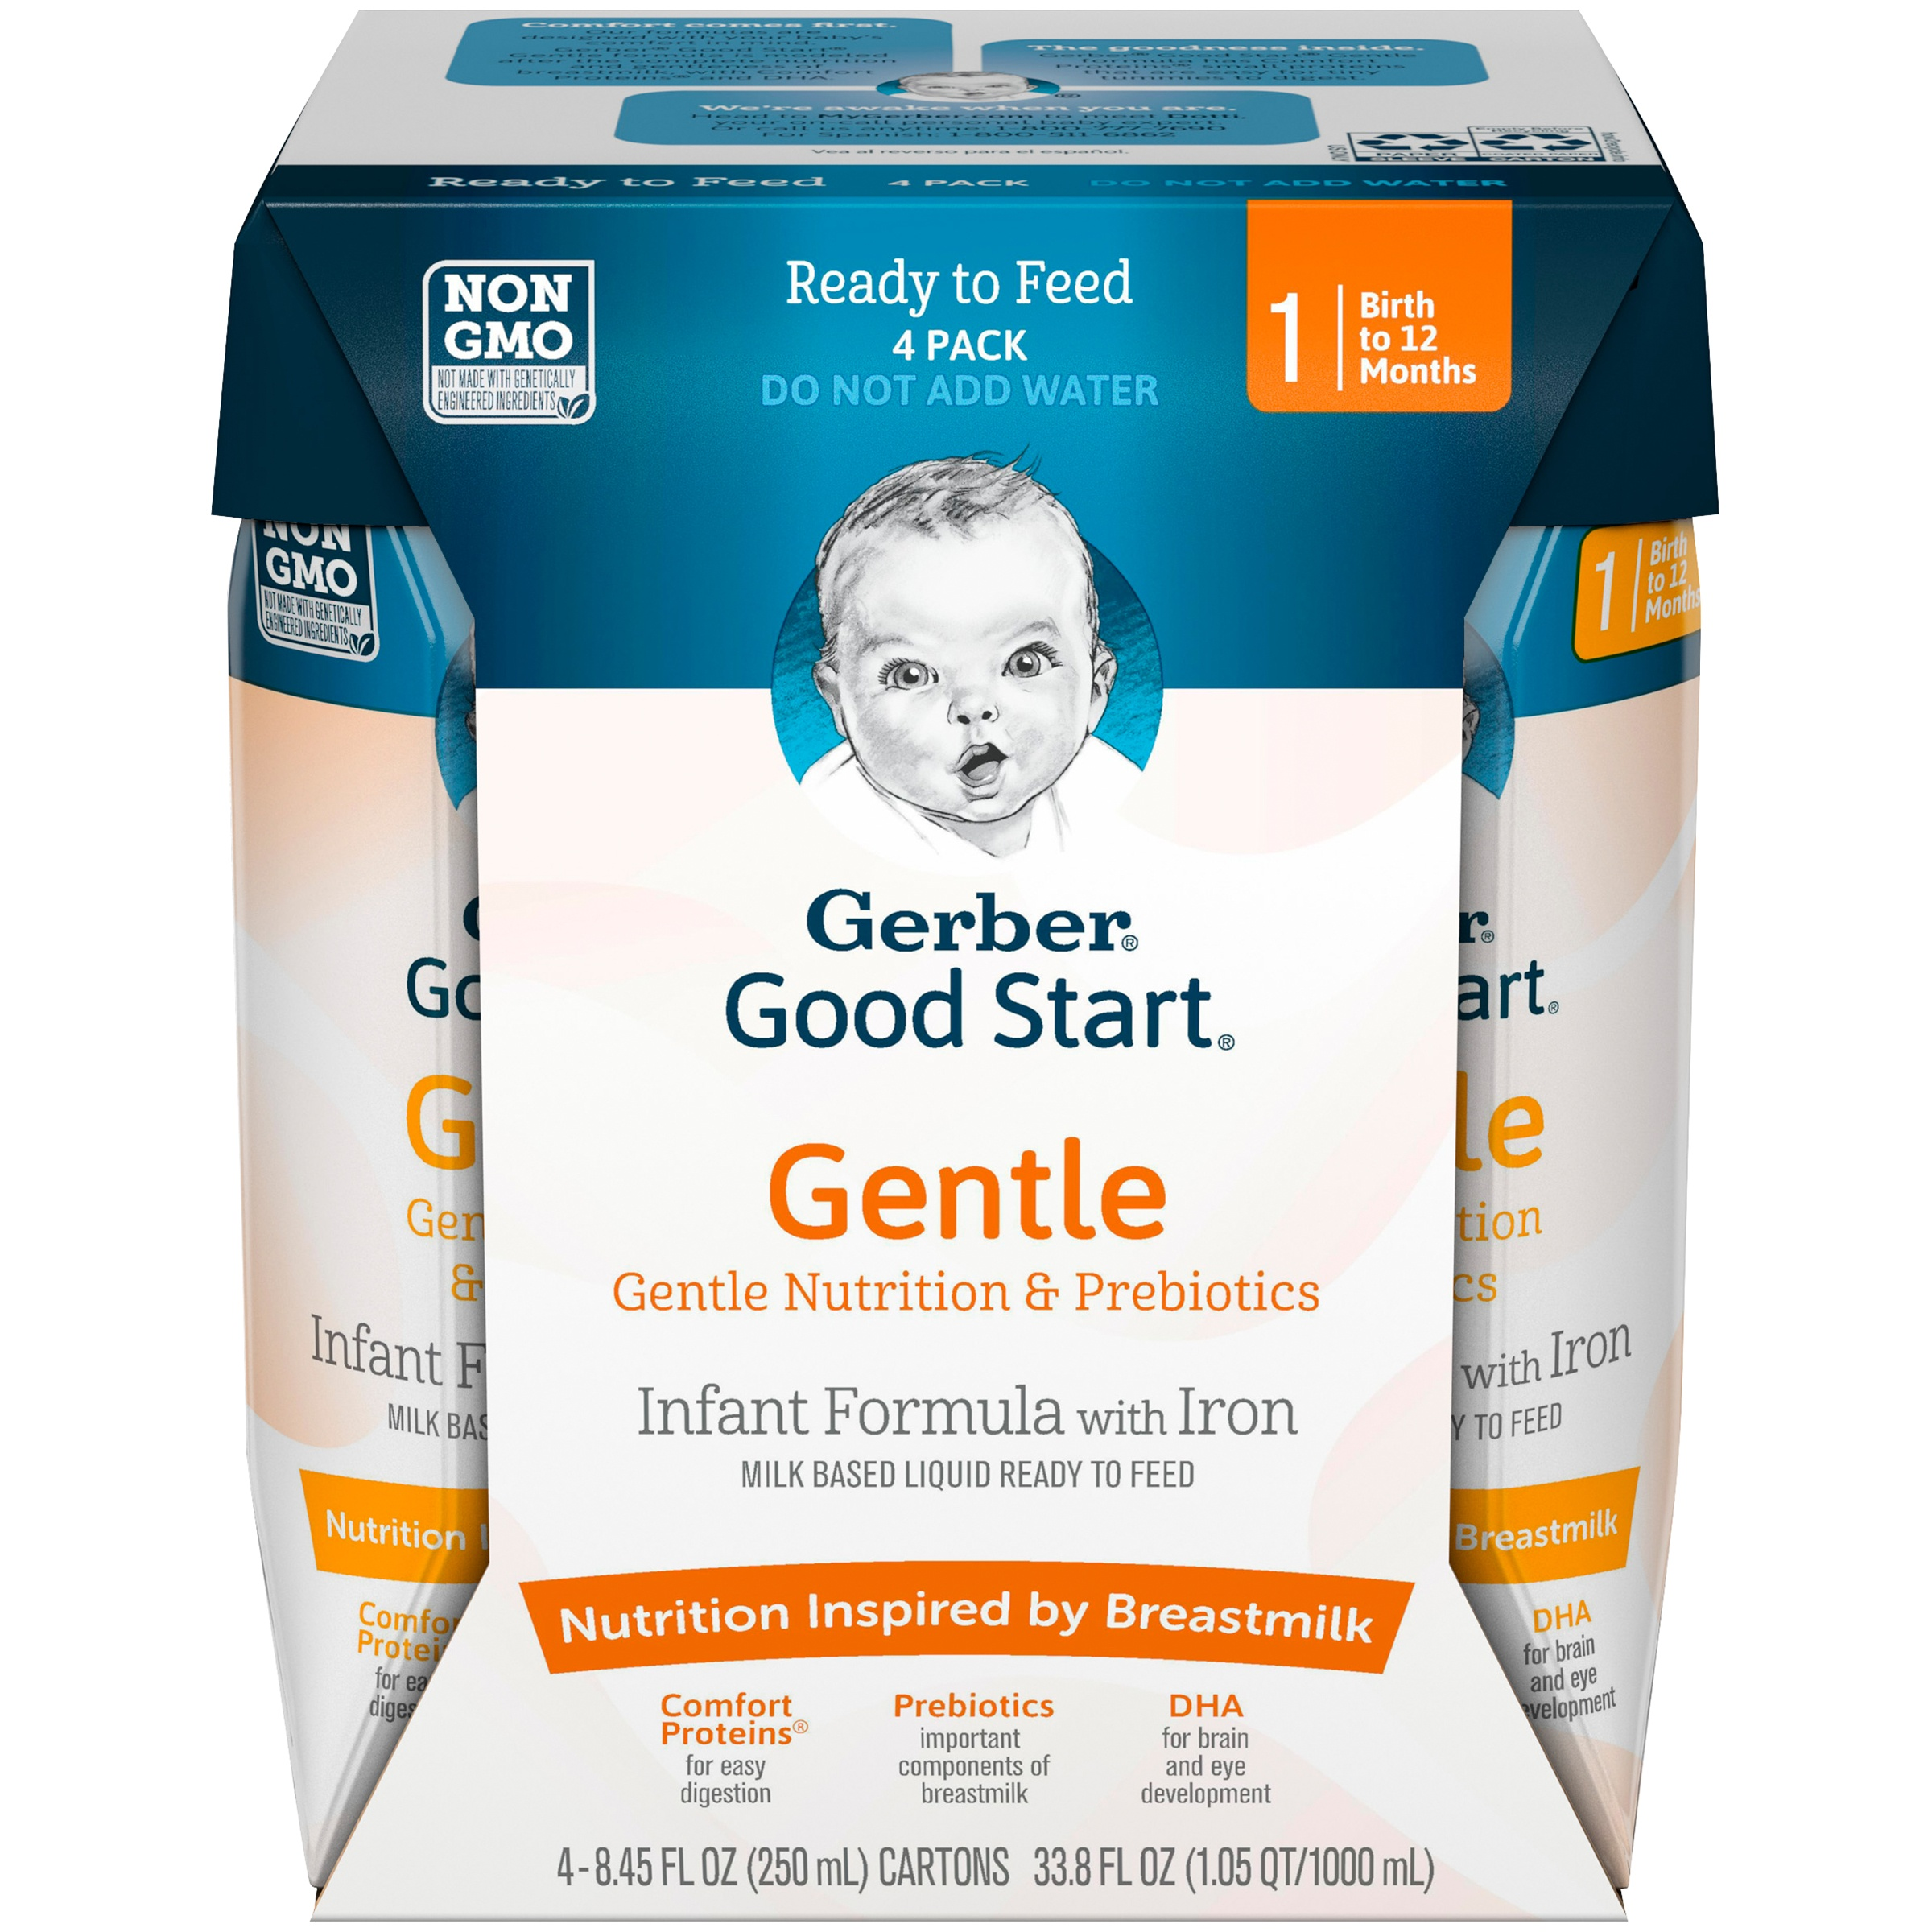 Gerber Good Start Gentle Non-GMO Ready to Feed Infant Formula, Stage 1, 8.45 fl. oz. (Pack of 4)